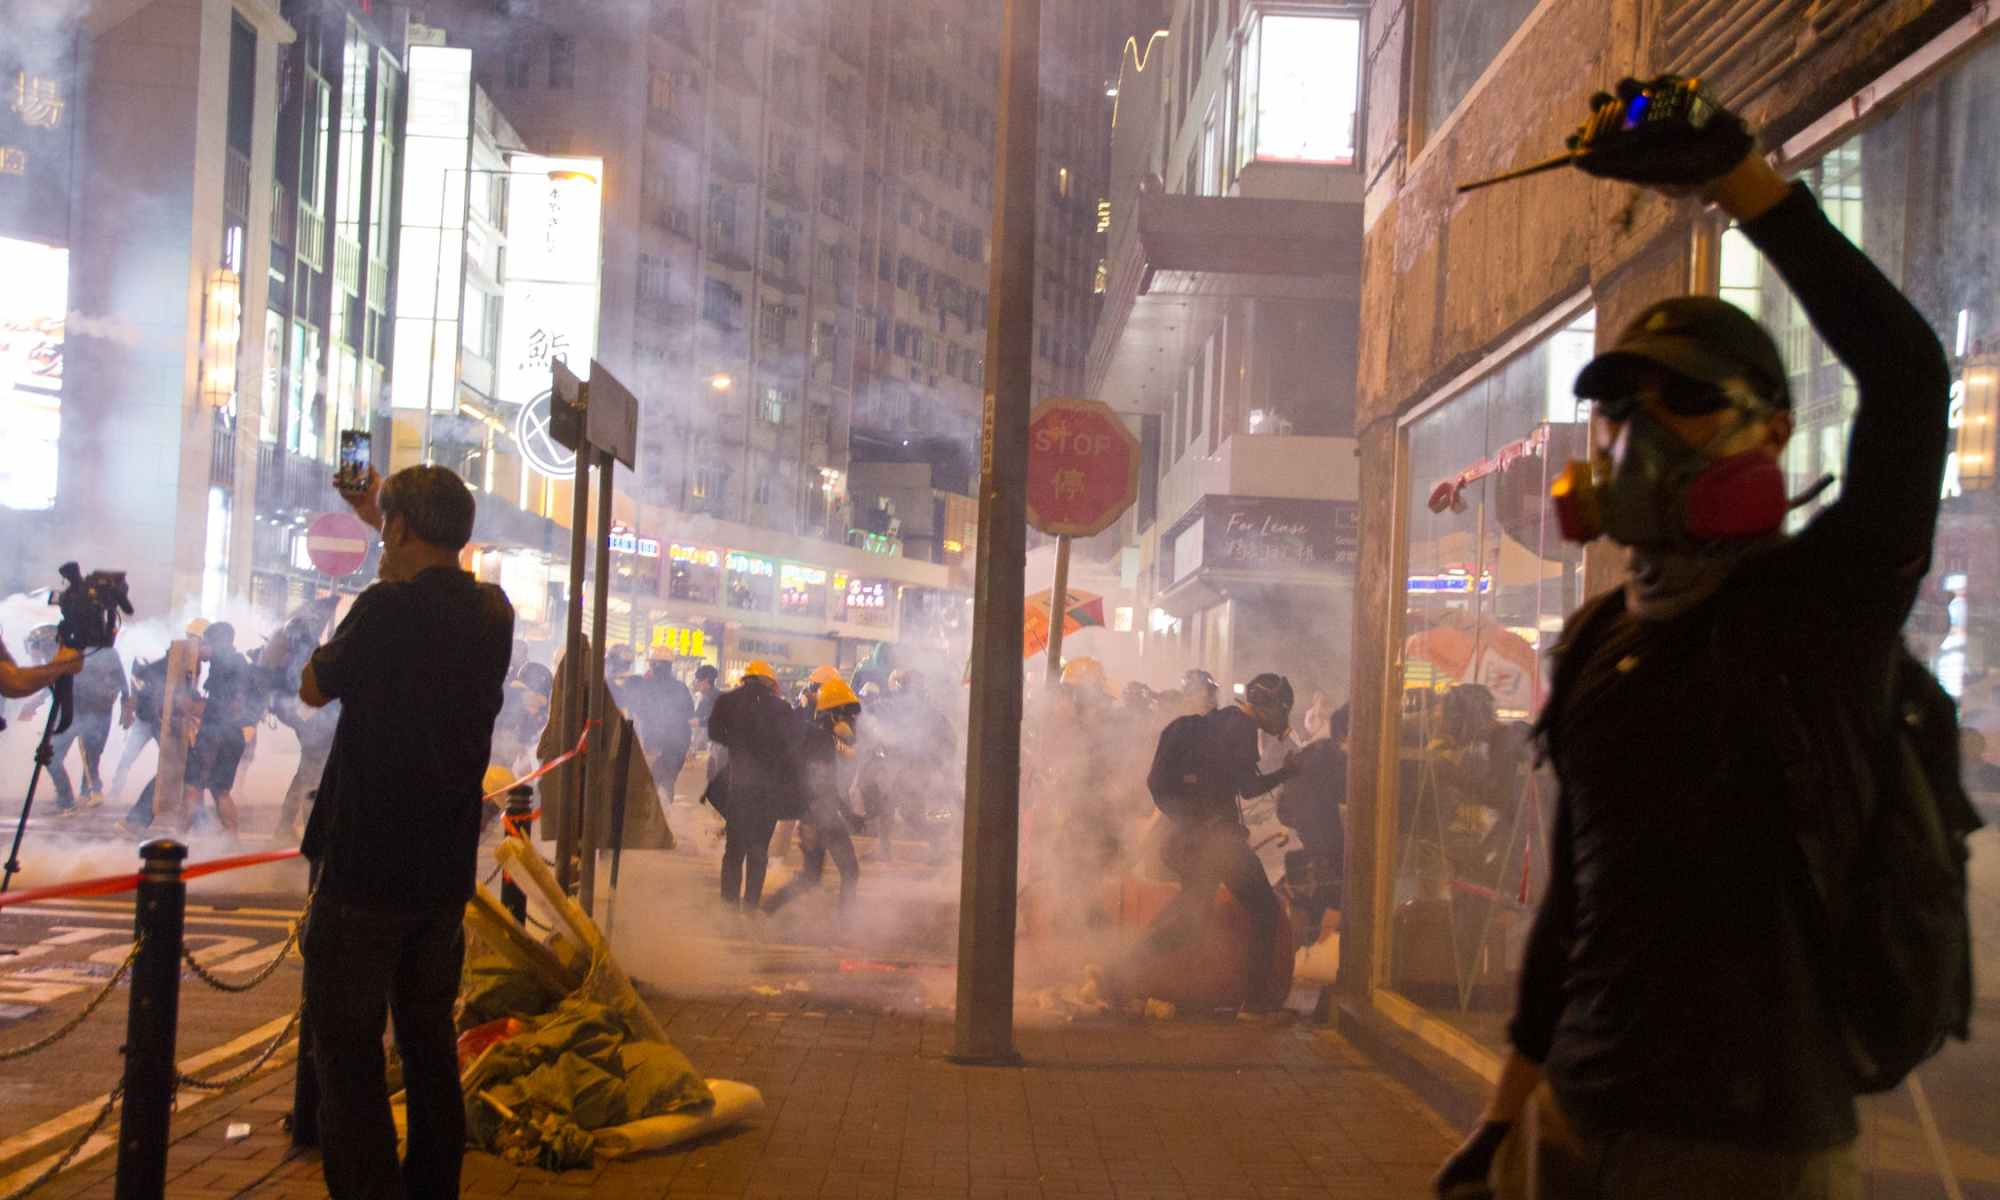 People wearing gas masks in city streets rioting